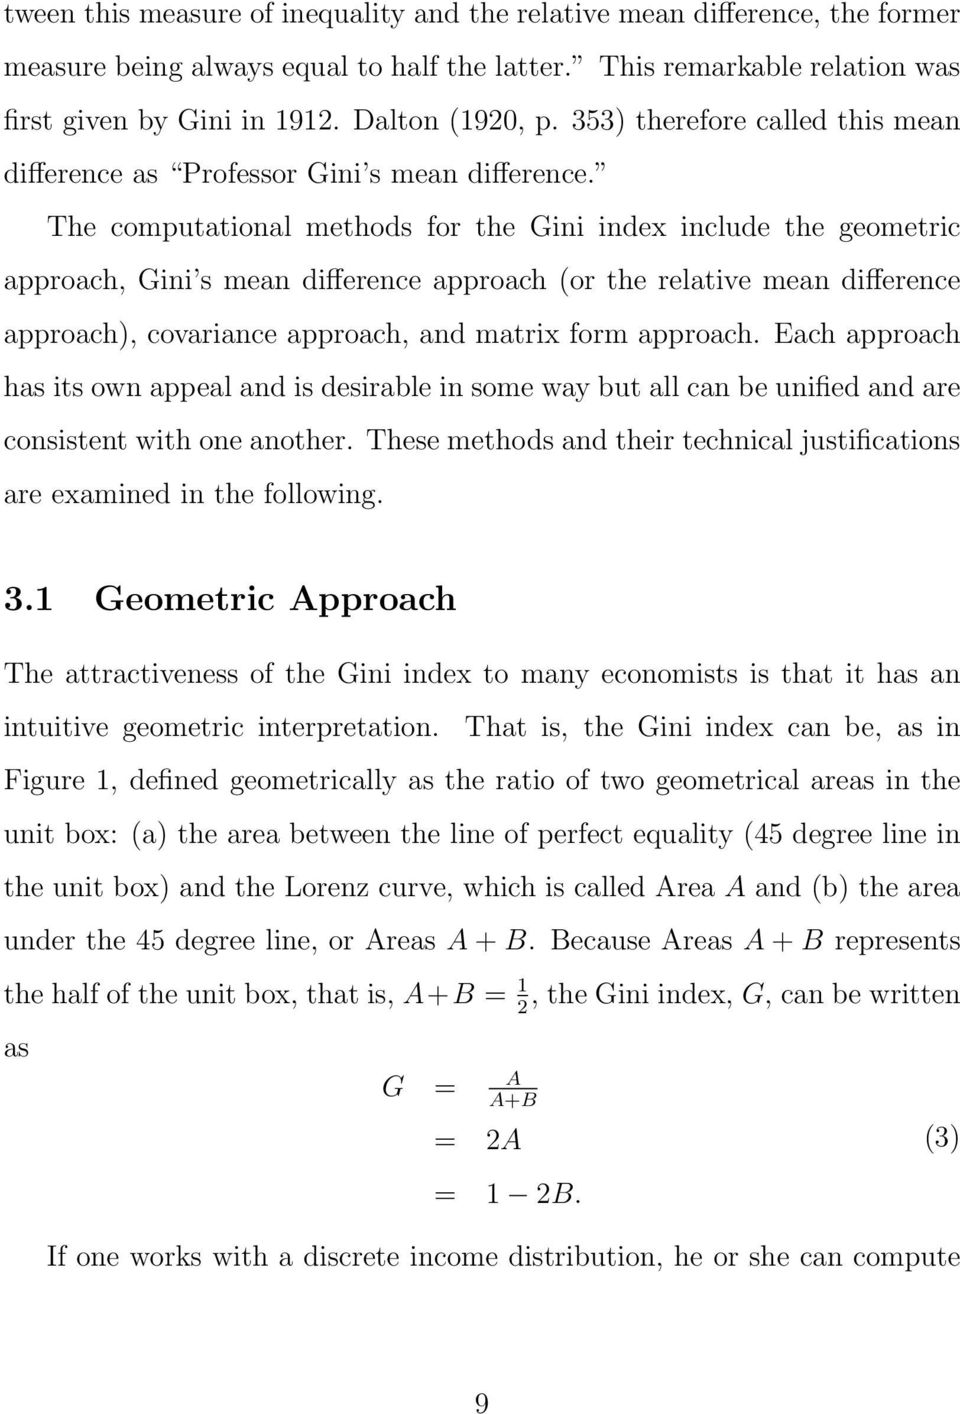 The computatioal methods for the Gii idex iclude the geometric approach, Gii s mea differece approach (or the relative mea differece approach), covariace approach, ad matrix form approach.